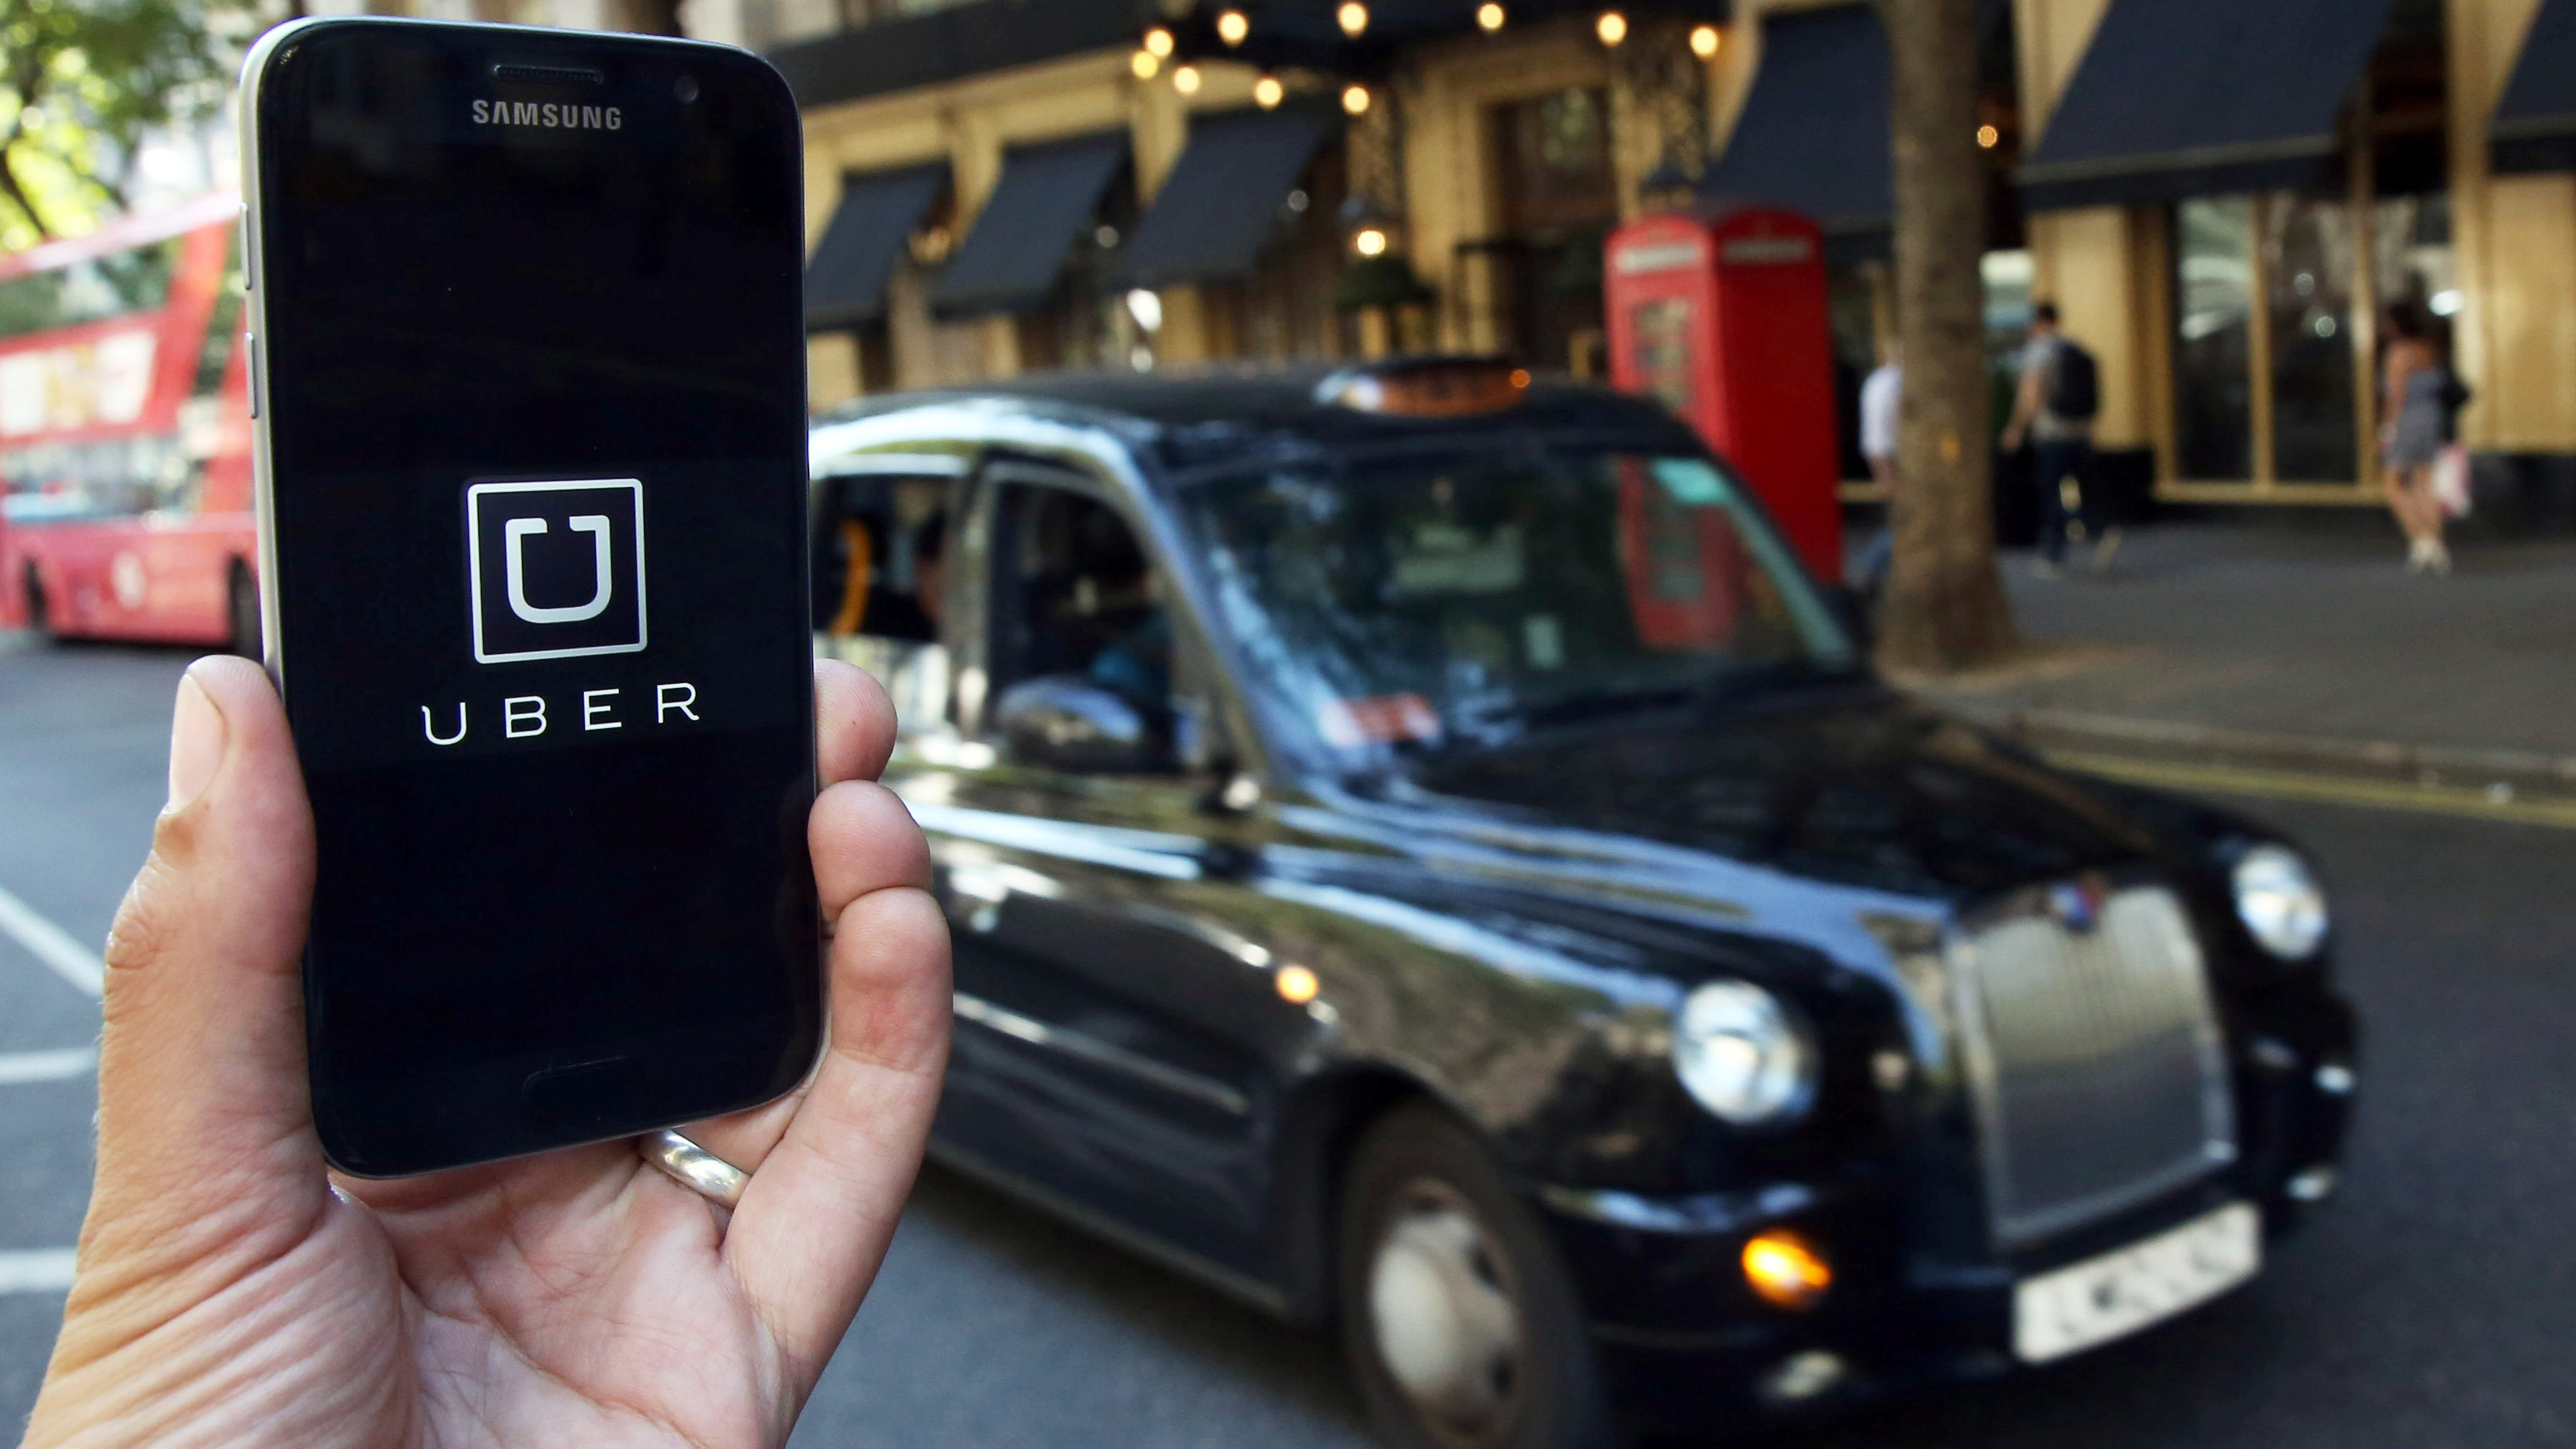 FILE PHOTO - A photo illustration shows the Uber app logo displayed on a mobile telephone, as it is held up for a posed photograph in central London, Britain August 17, 2016.